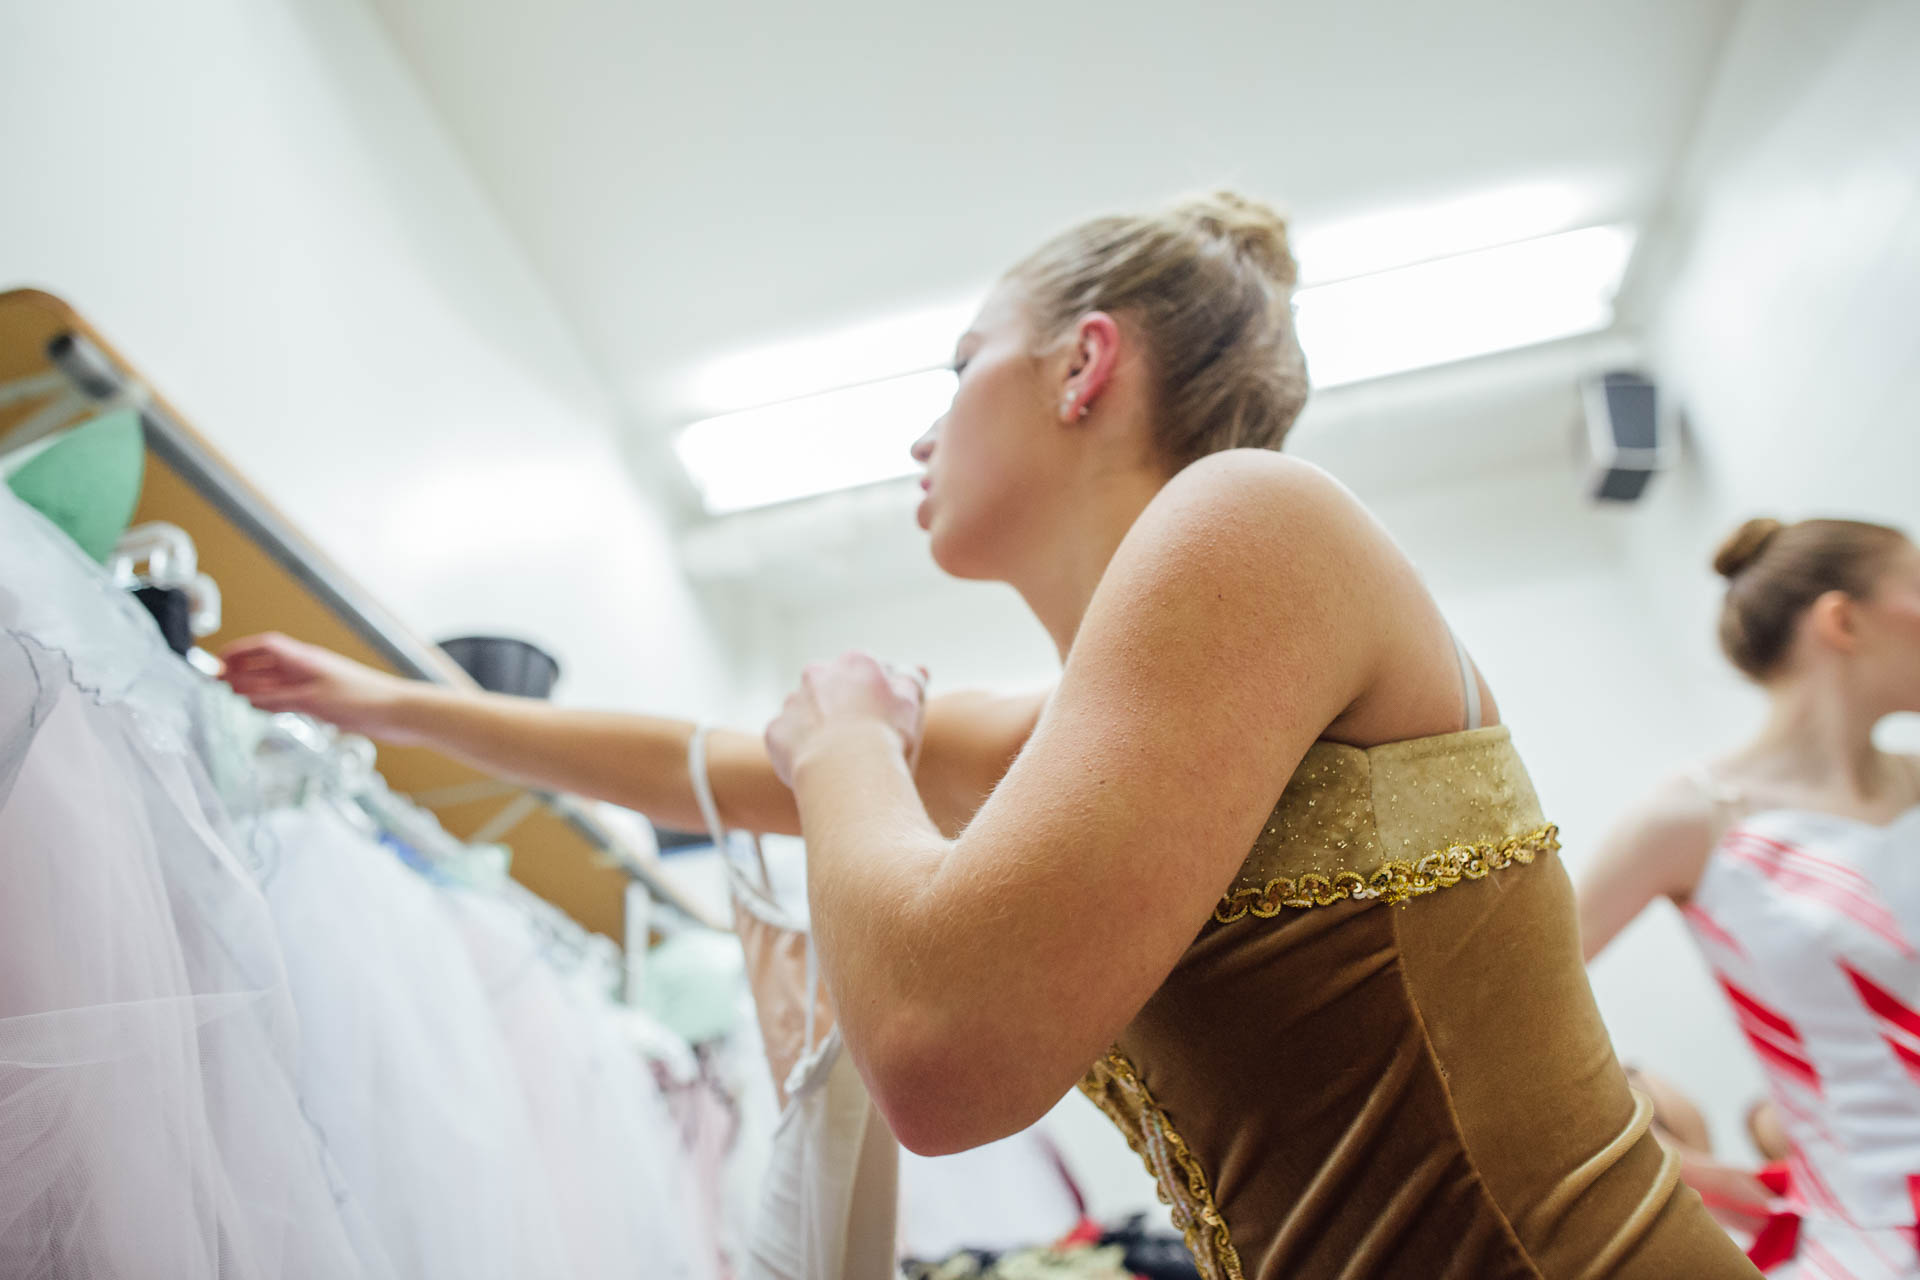 nutcracker-ballerinas-dressing-room-5806